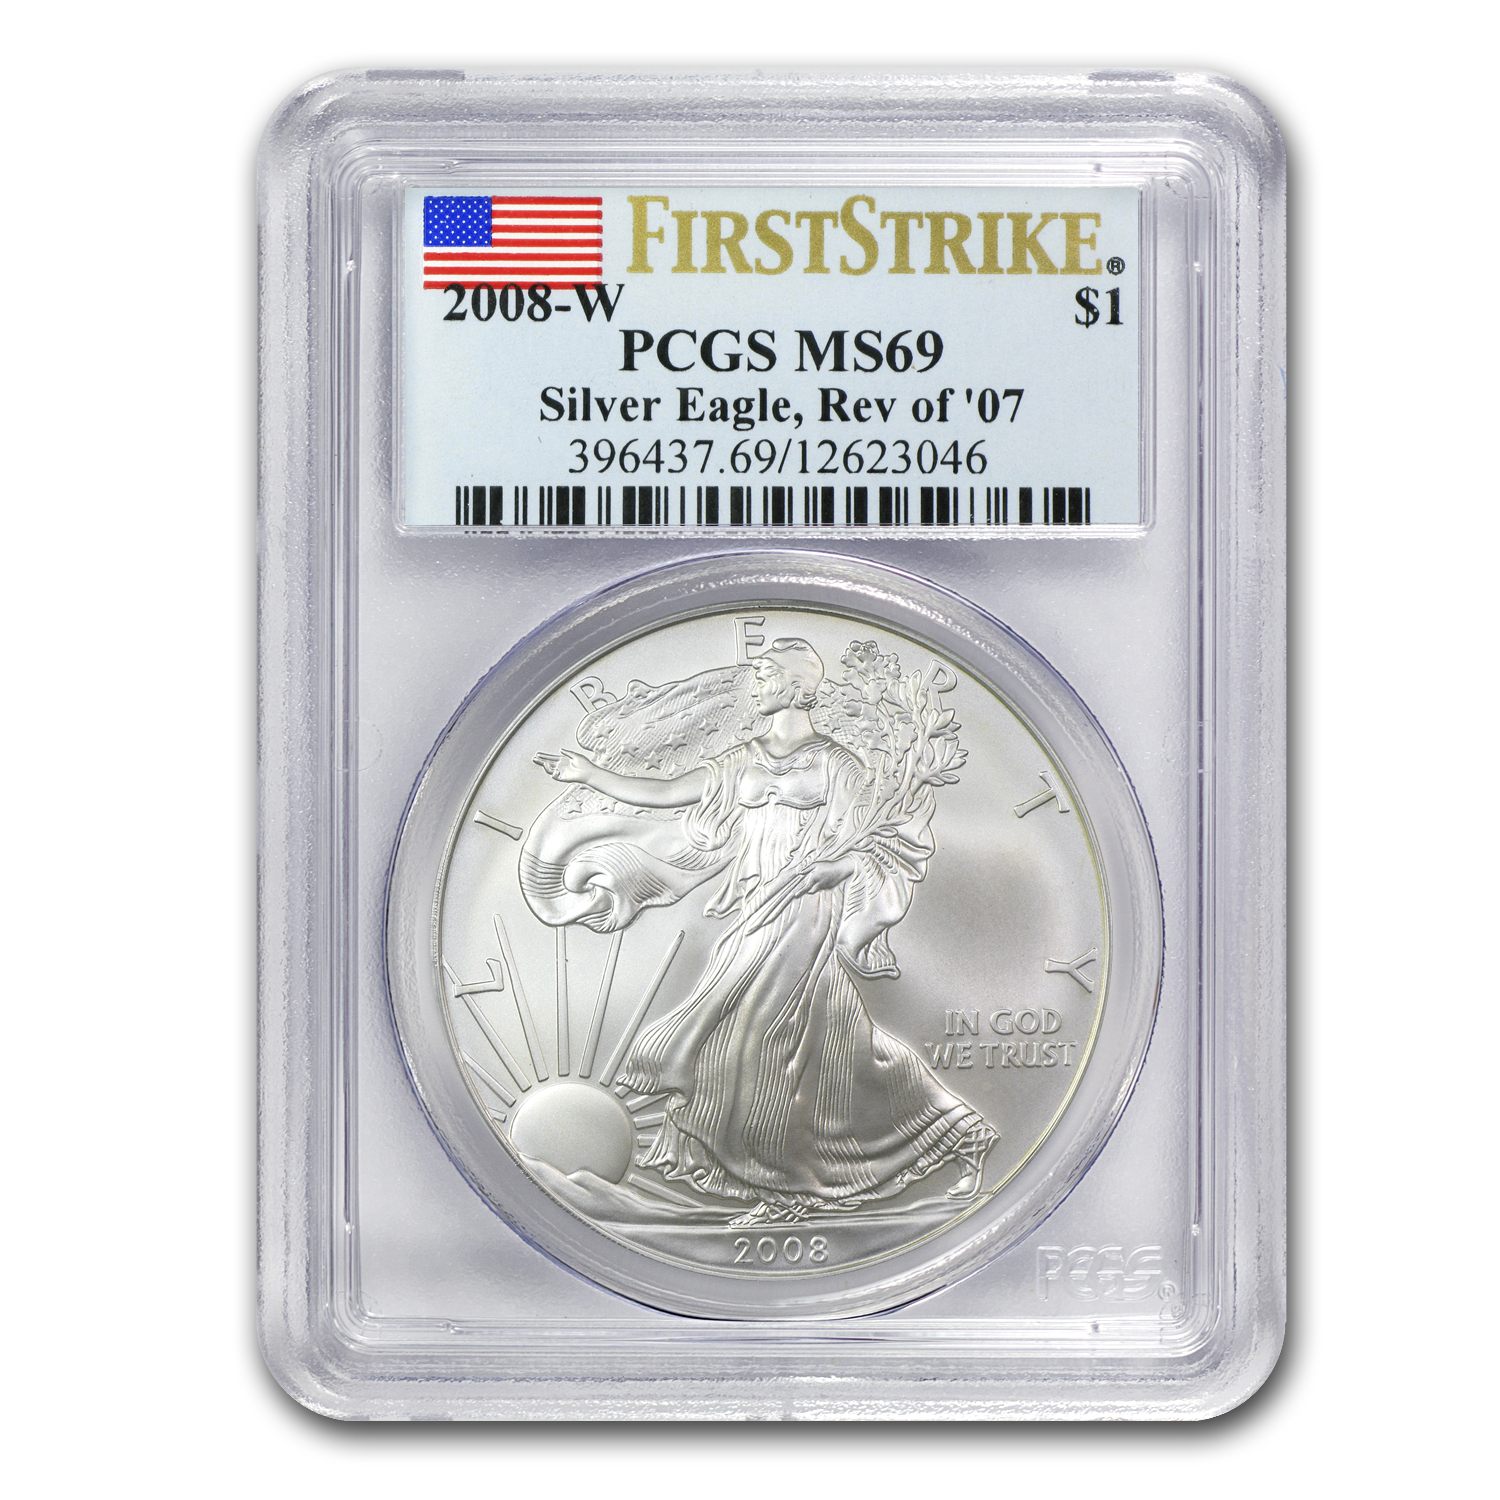 2008-W Burnished Silver American Eagle MS-69 PCGS (FS) (Rev '07)